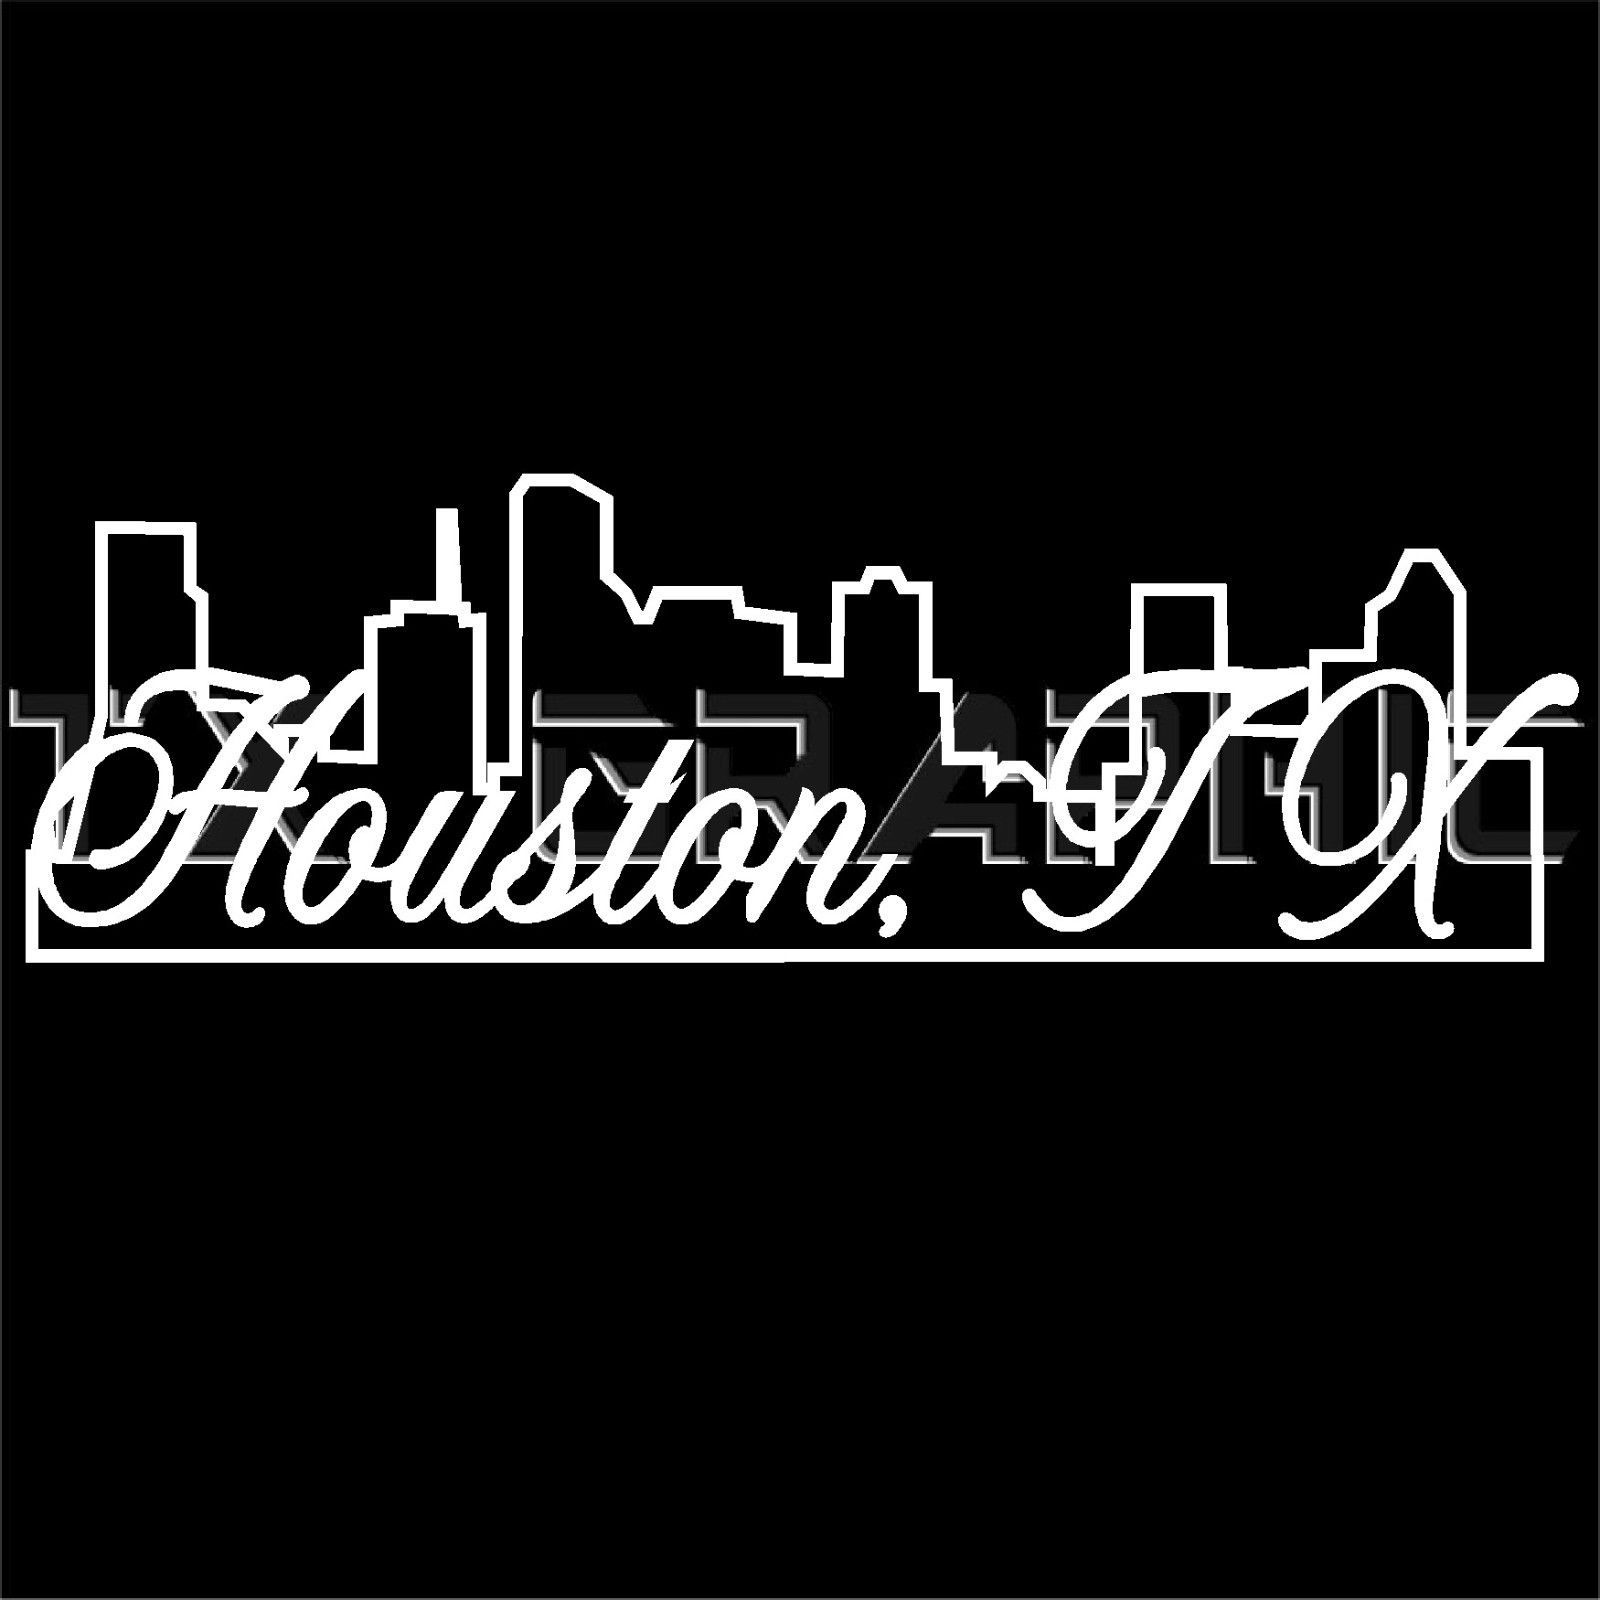 Houston Texas Skyline Decal H Town Houstonian Texans City Sticker Houston Texas Skyline Houstonian Neon Signs